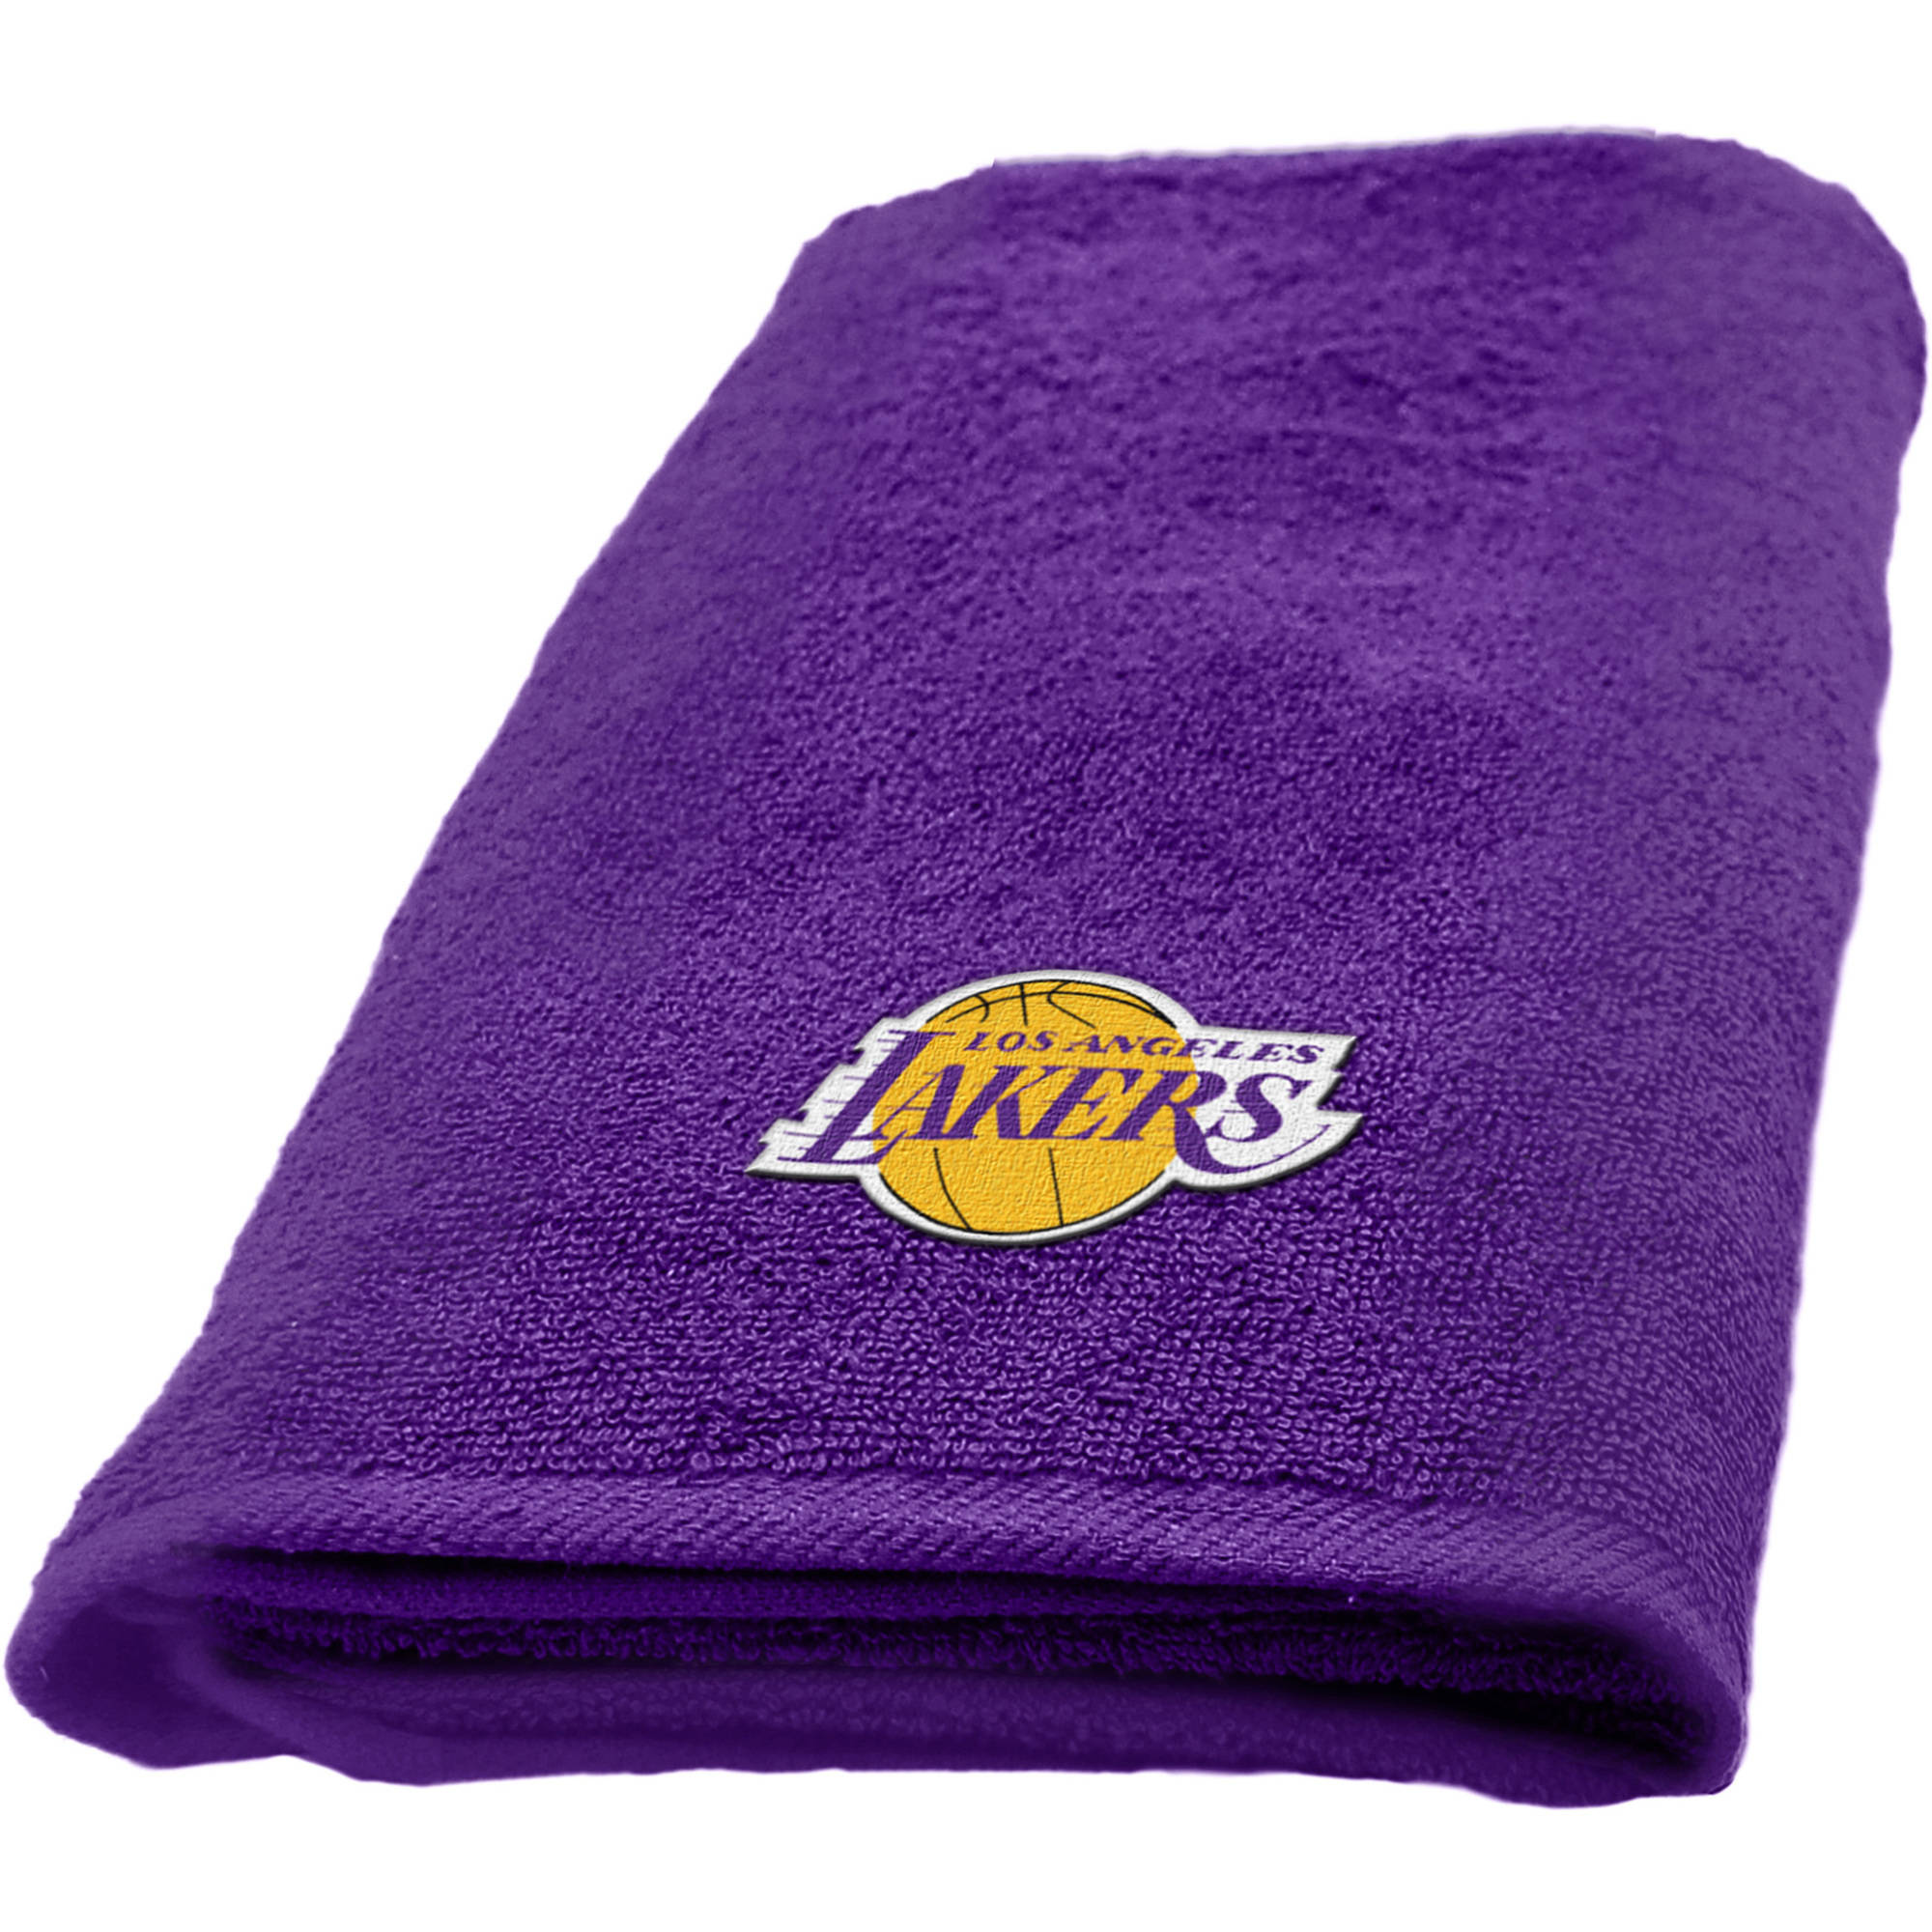 "NBA Los Angeles Lakers 15""x26"" Applique Hand Towel"